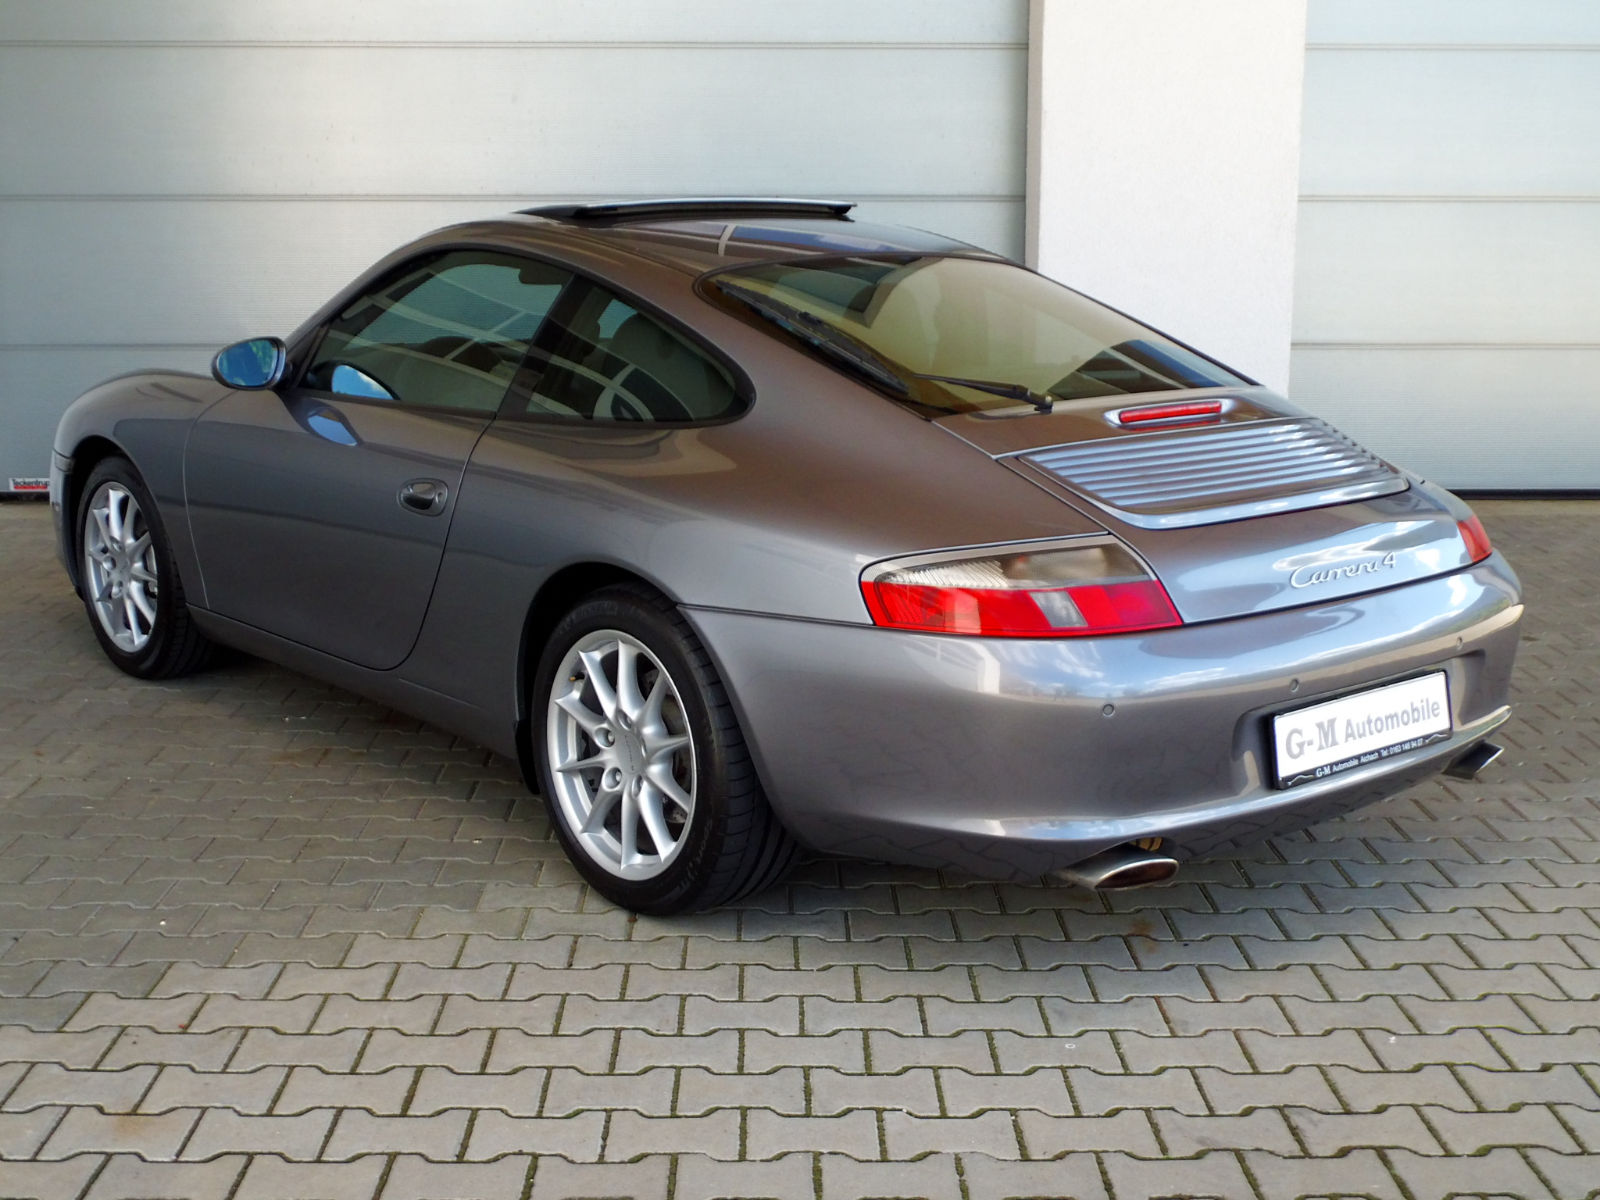 PORSCHE 911 996 (08/2003) - GREY METALLIC - lieu: